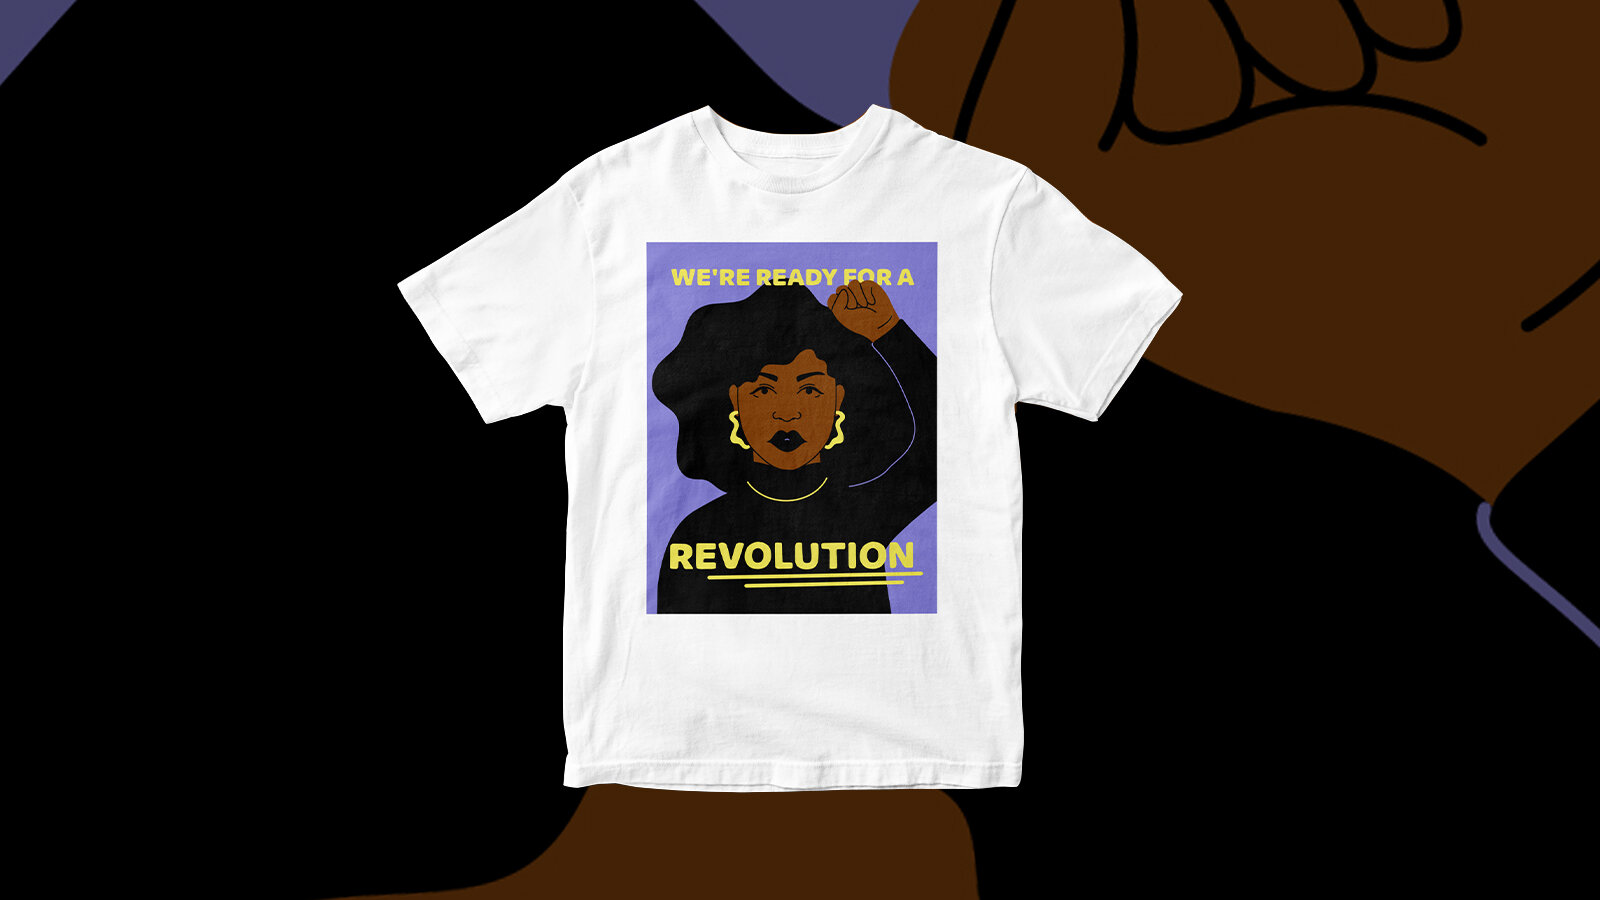 """A woman with her fist raised on a purple background with the words """"WE WANT A REVOLUTION"""" on a white t-shirt."""